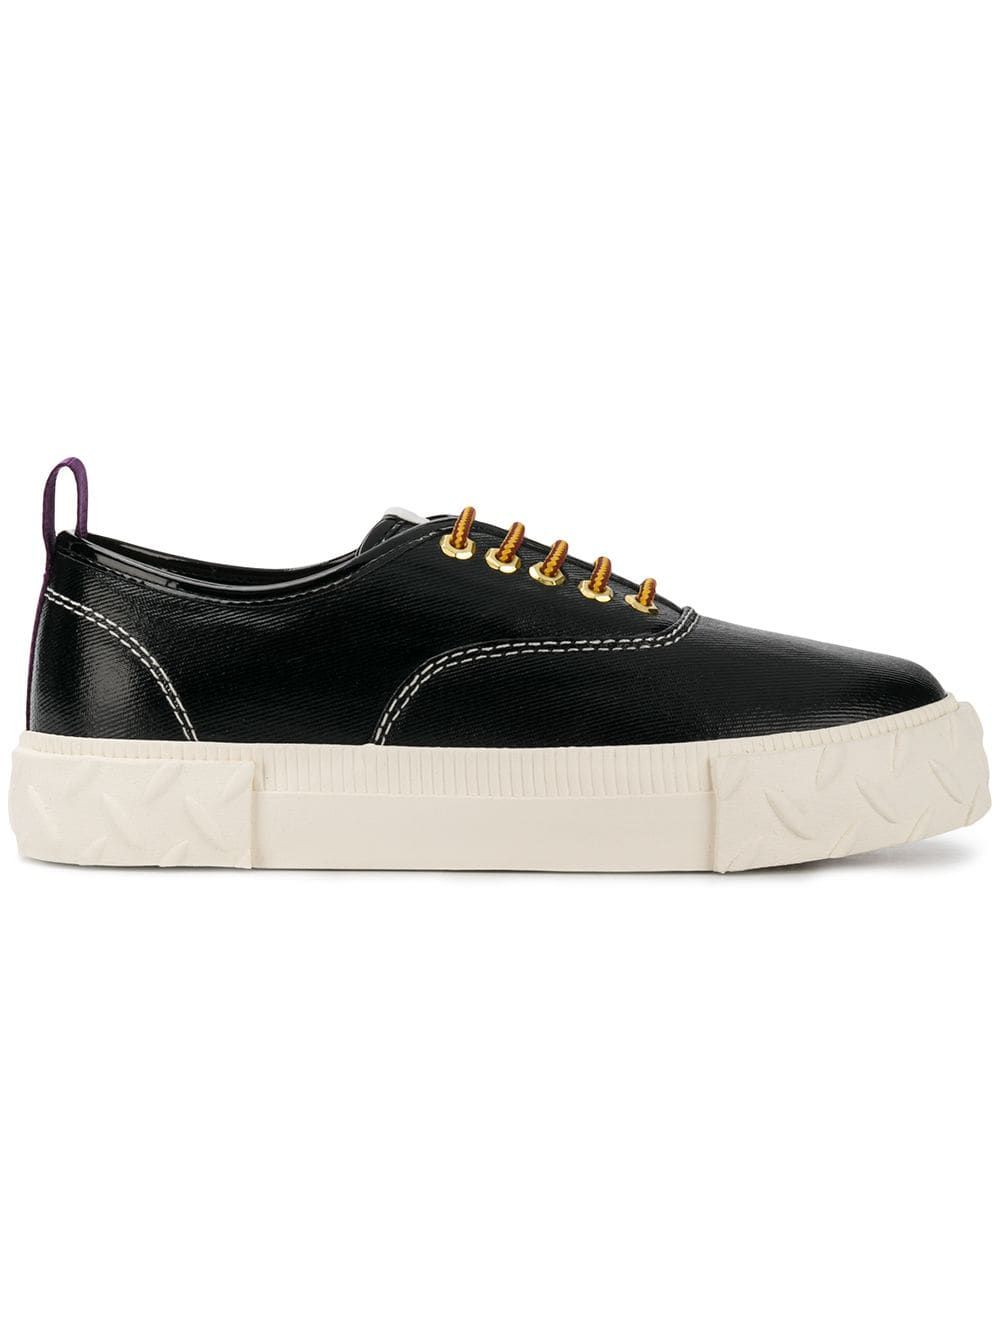 556c597a8da Eytys flatform lace-up sneakers - Black in 2019   Products ...